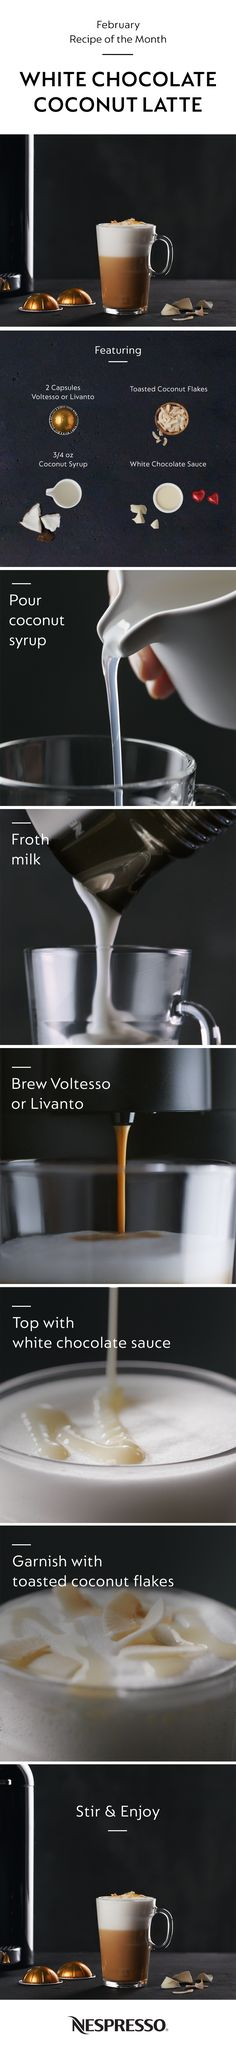 Warm up your winter routine with this twist on the white chocolate latte. Click the pin & try a new Nespresso recipe today.  Nespresso White Chocolate Coconut Latte -Add  ¾ oz coconut syrup to mug -Froth 6 oz milk until hot & foamy -Pour foamed milk into mug and stir -Brew two shots of espresso (Voltesso or Livanto) into mug -Top with generous amount of white chocolate sauce -Sprinkle toasted coconut flakes -Stir & enjoy!